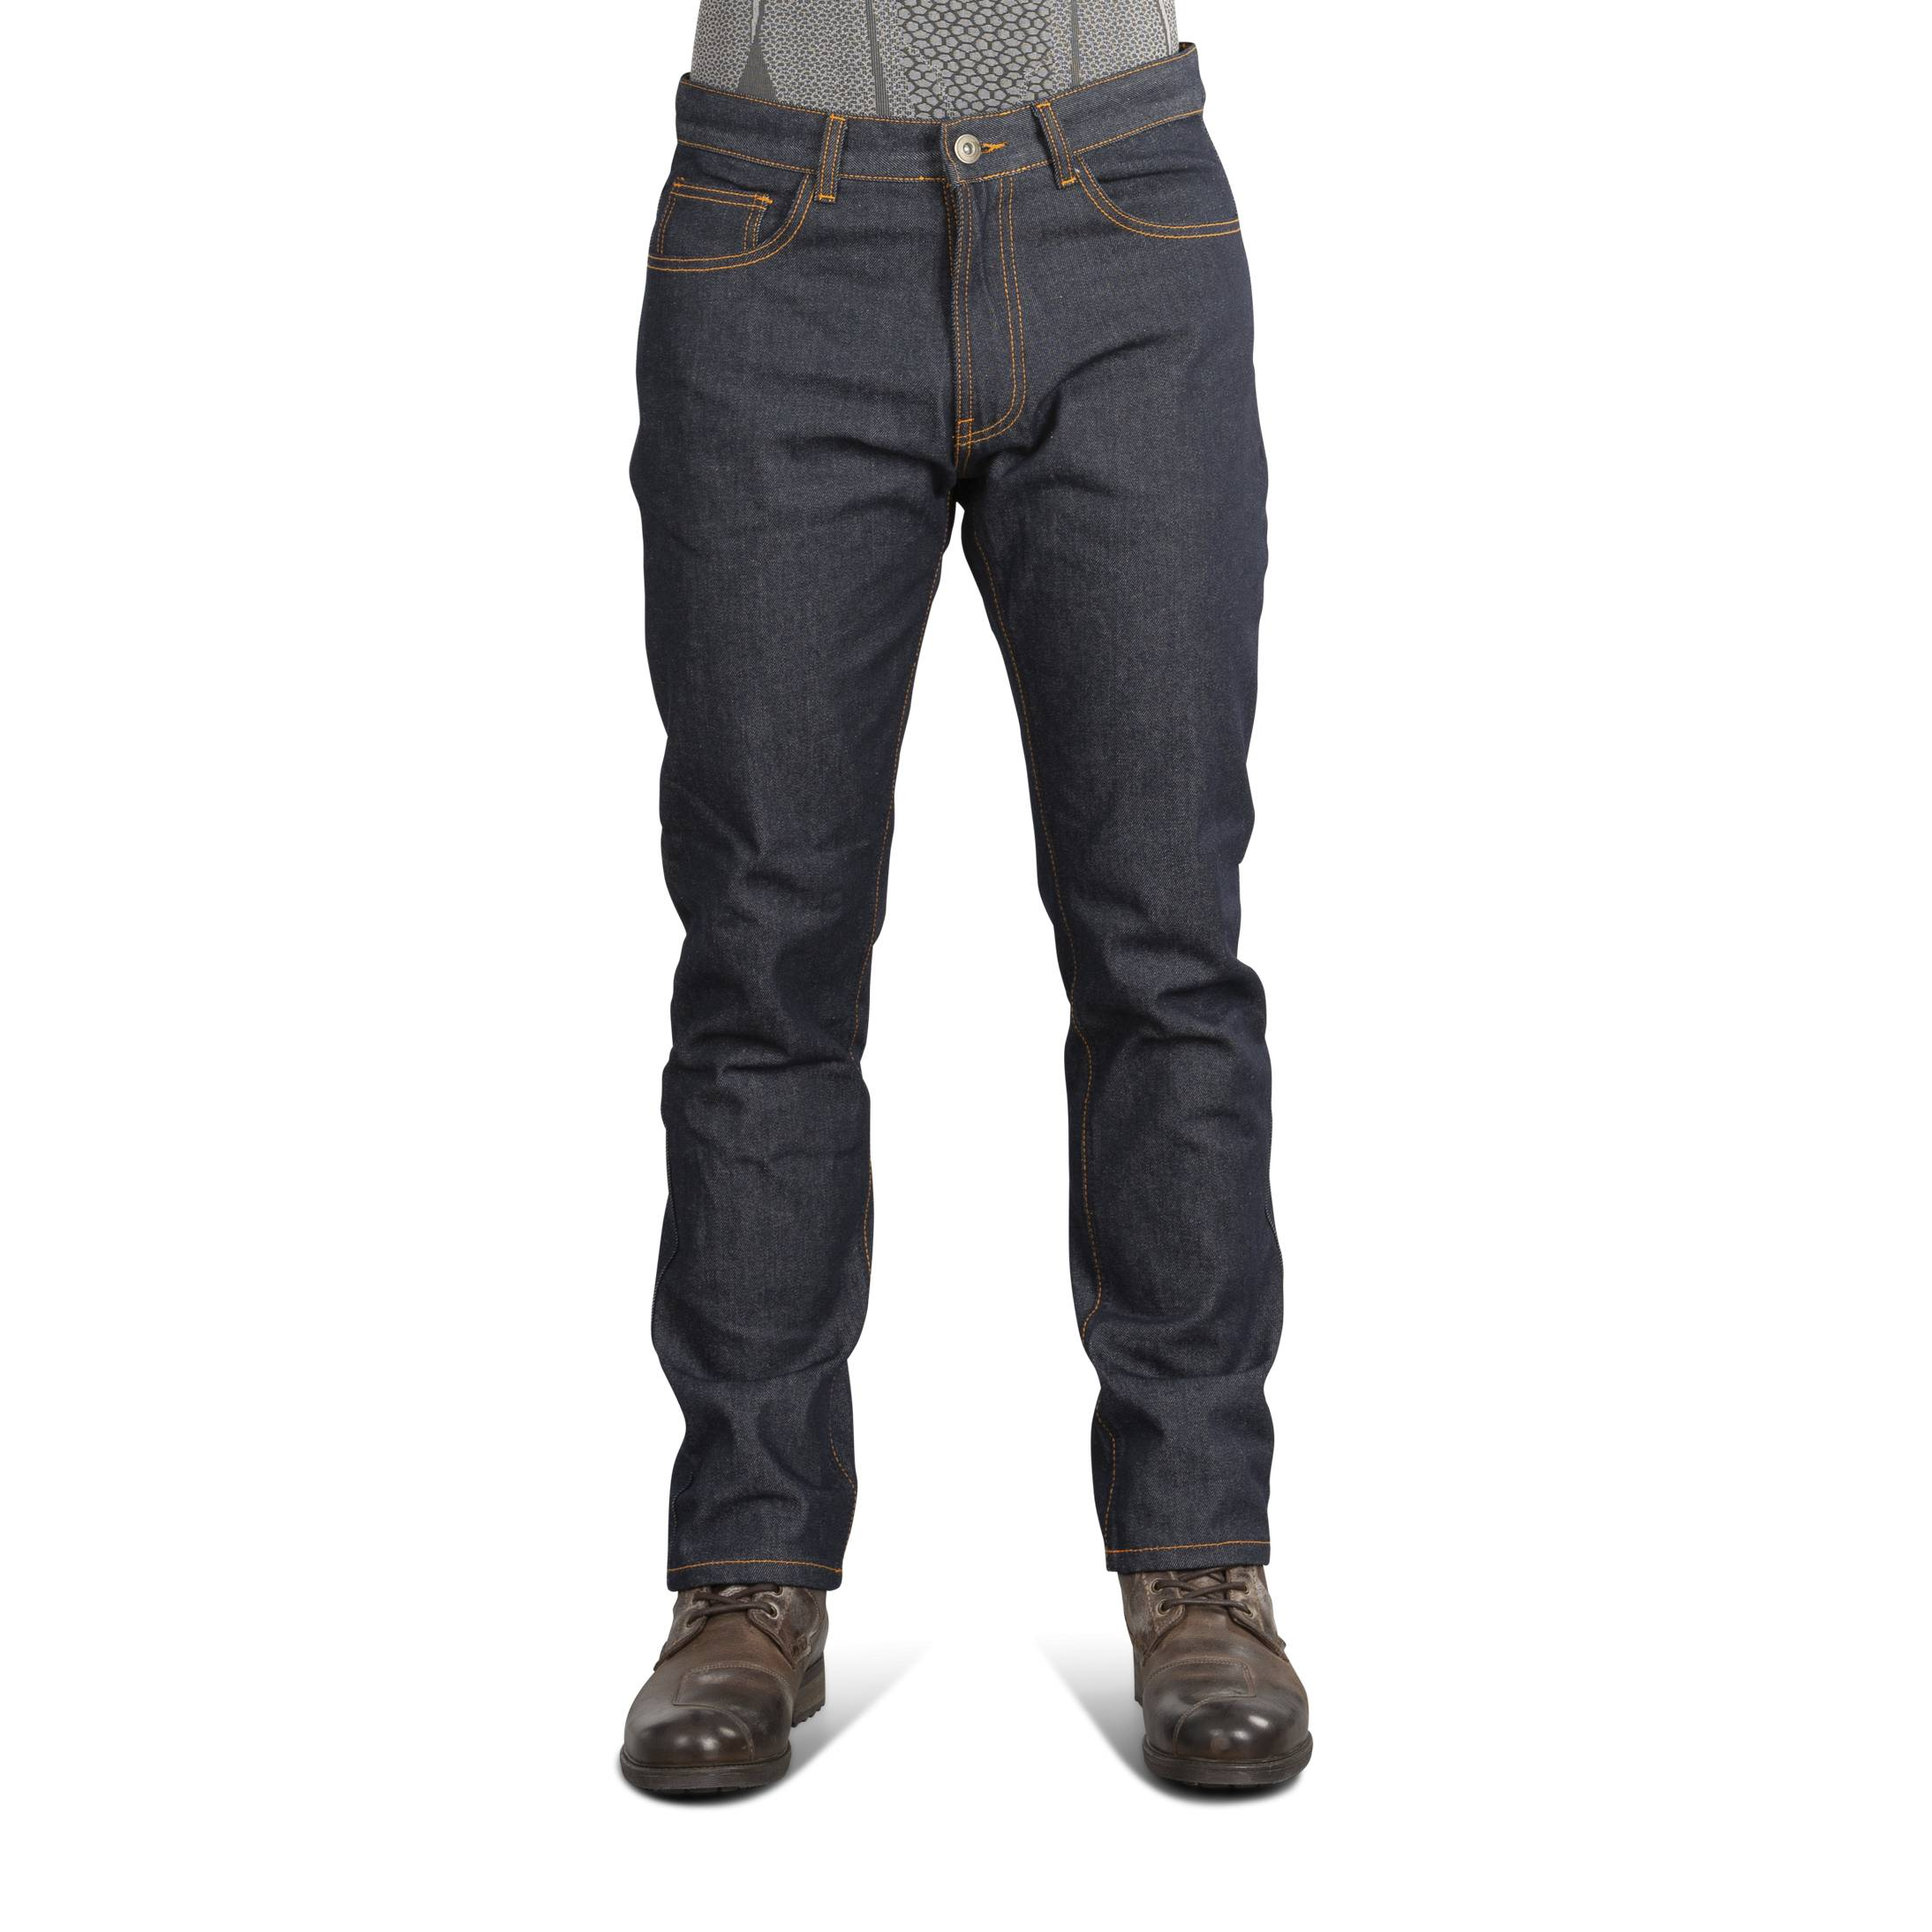 Course Jean Moto Course Heavy Duty Anti-Fit Raw Denim W40 L34